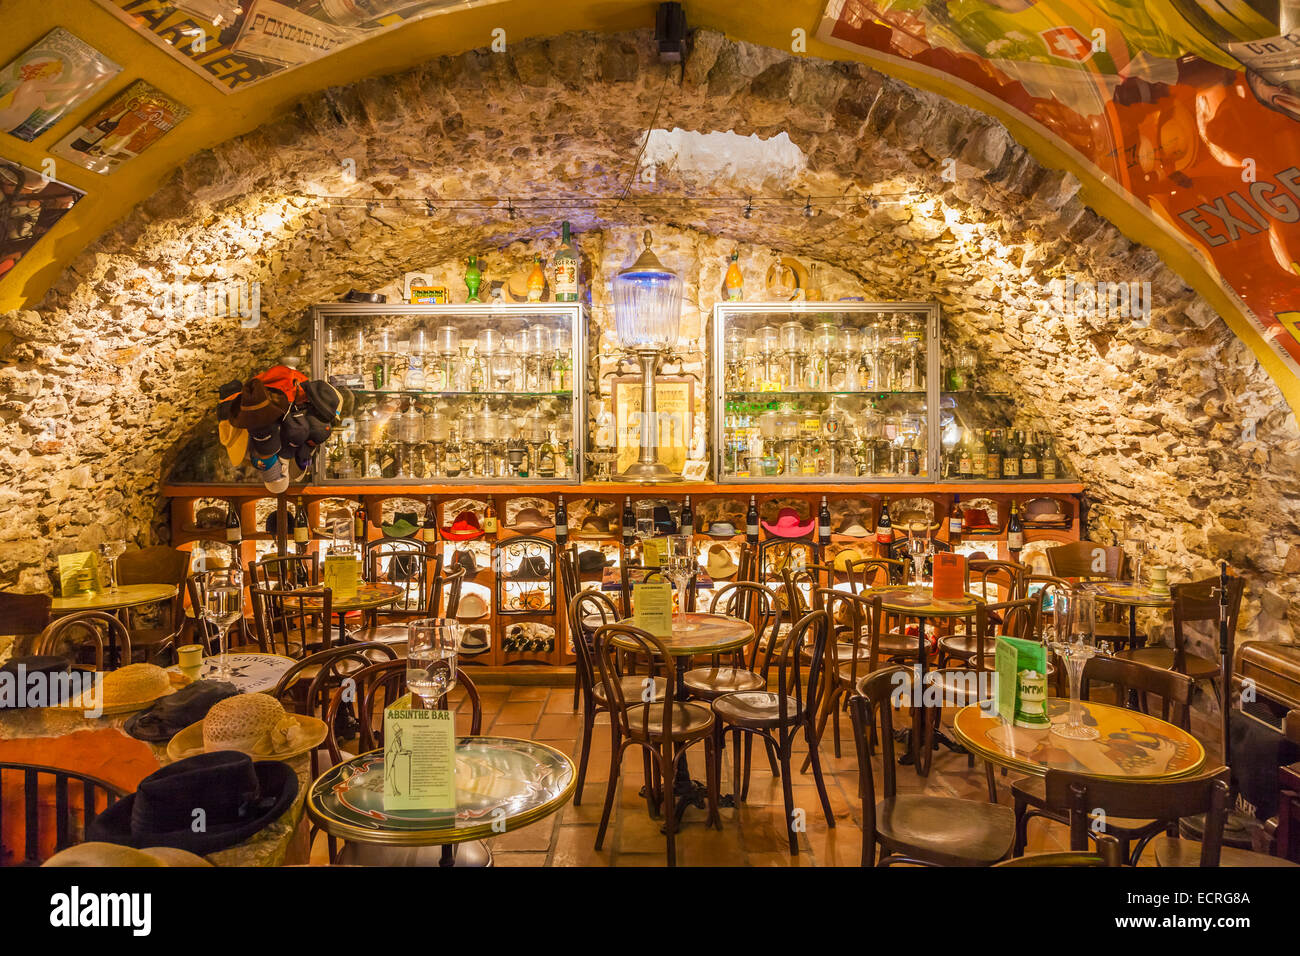 ABSINTHE BAR, MUSEUM, OLD TOWN, ANTIBES, COTE D'AZUR, PROVENCE, FRANCE - Stock Image